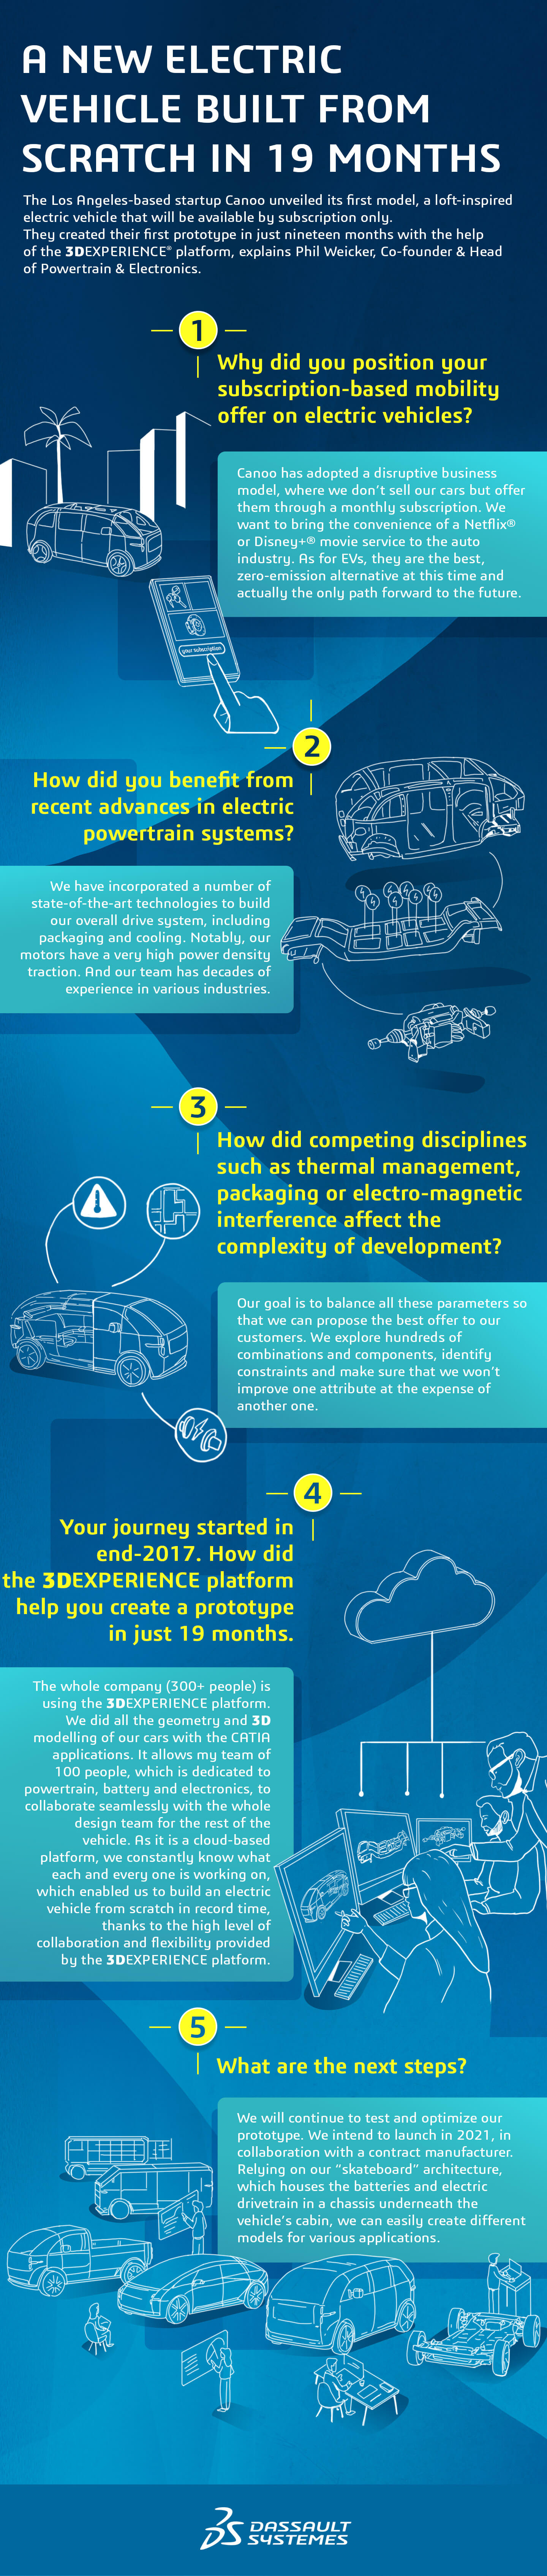 A New Electric Vehicle Built from Scratch in 19 Months Infography > Desktop view > Dassault Systèmes